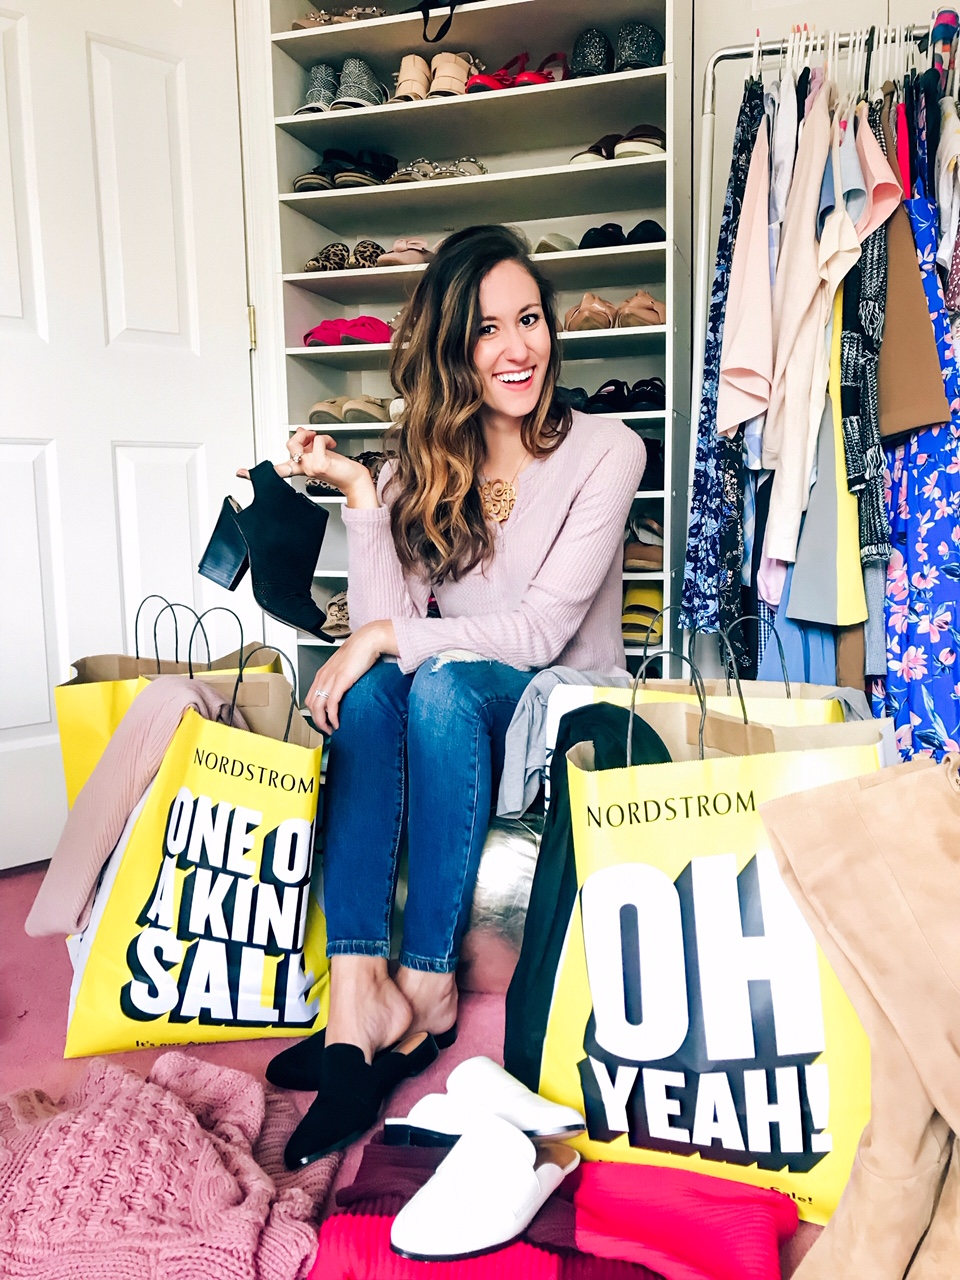 Everything you need to know about the Nordstrom Anniversary Sale - Key dates, How to shop it EARLY, A sneak peek at what will be on sale, + MORE - on Coming Up Roses